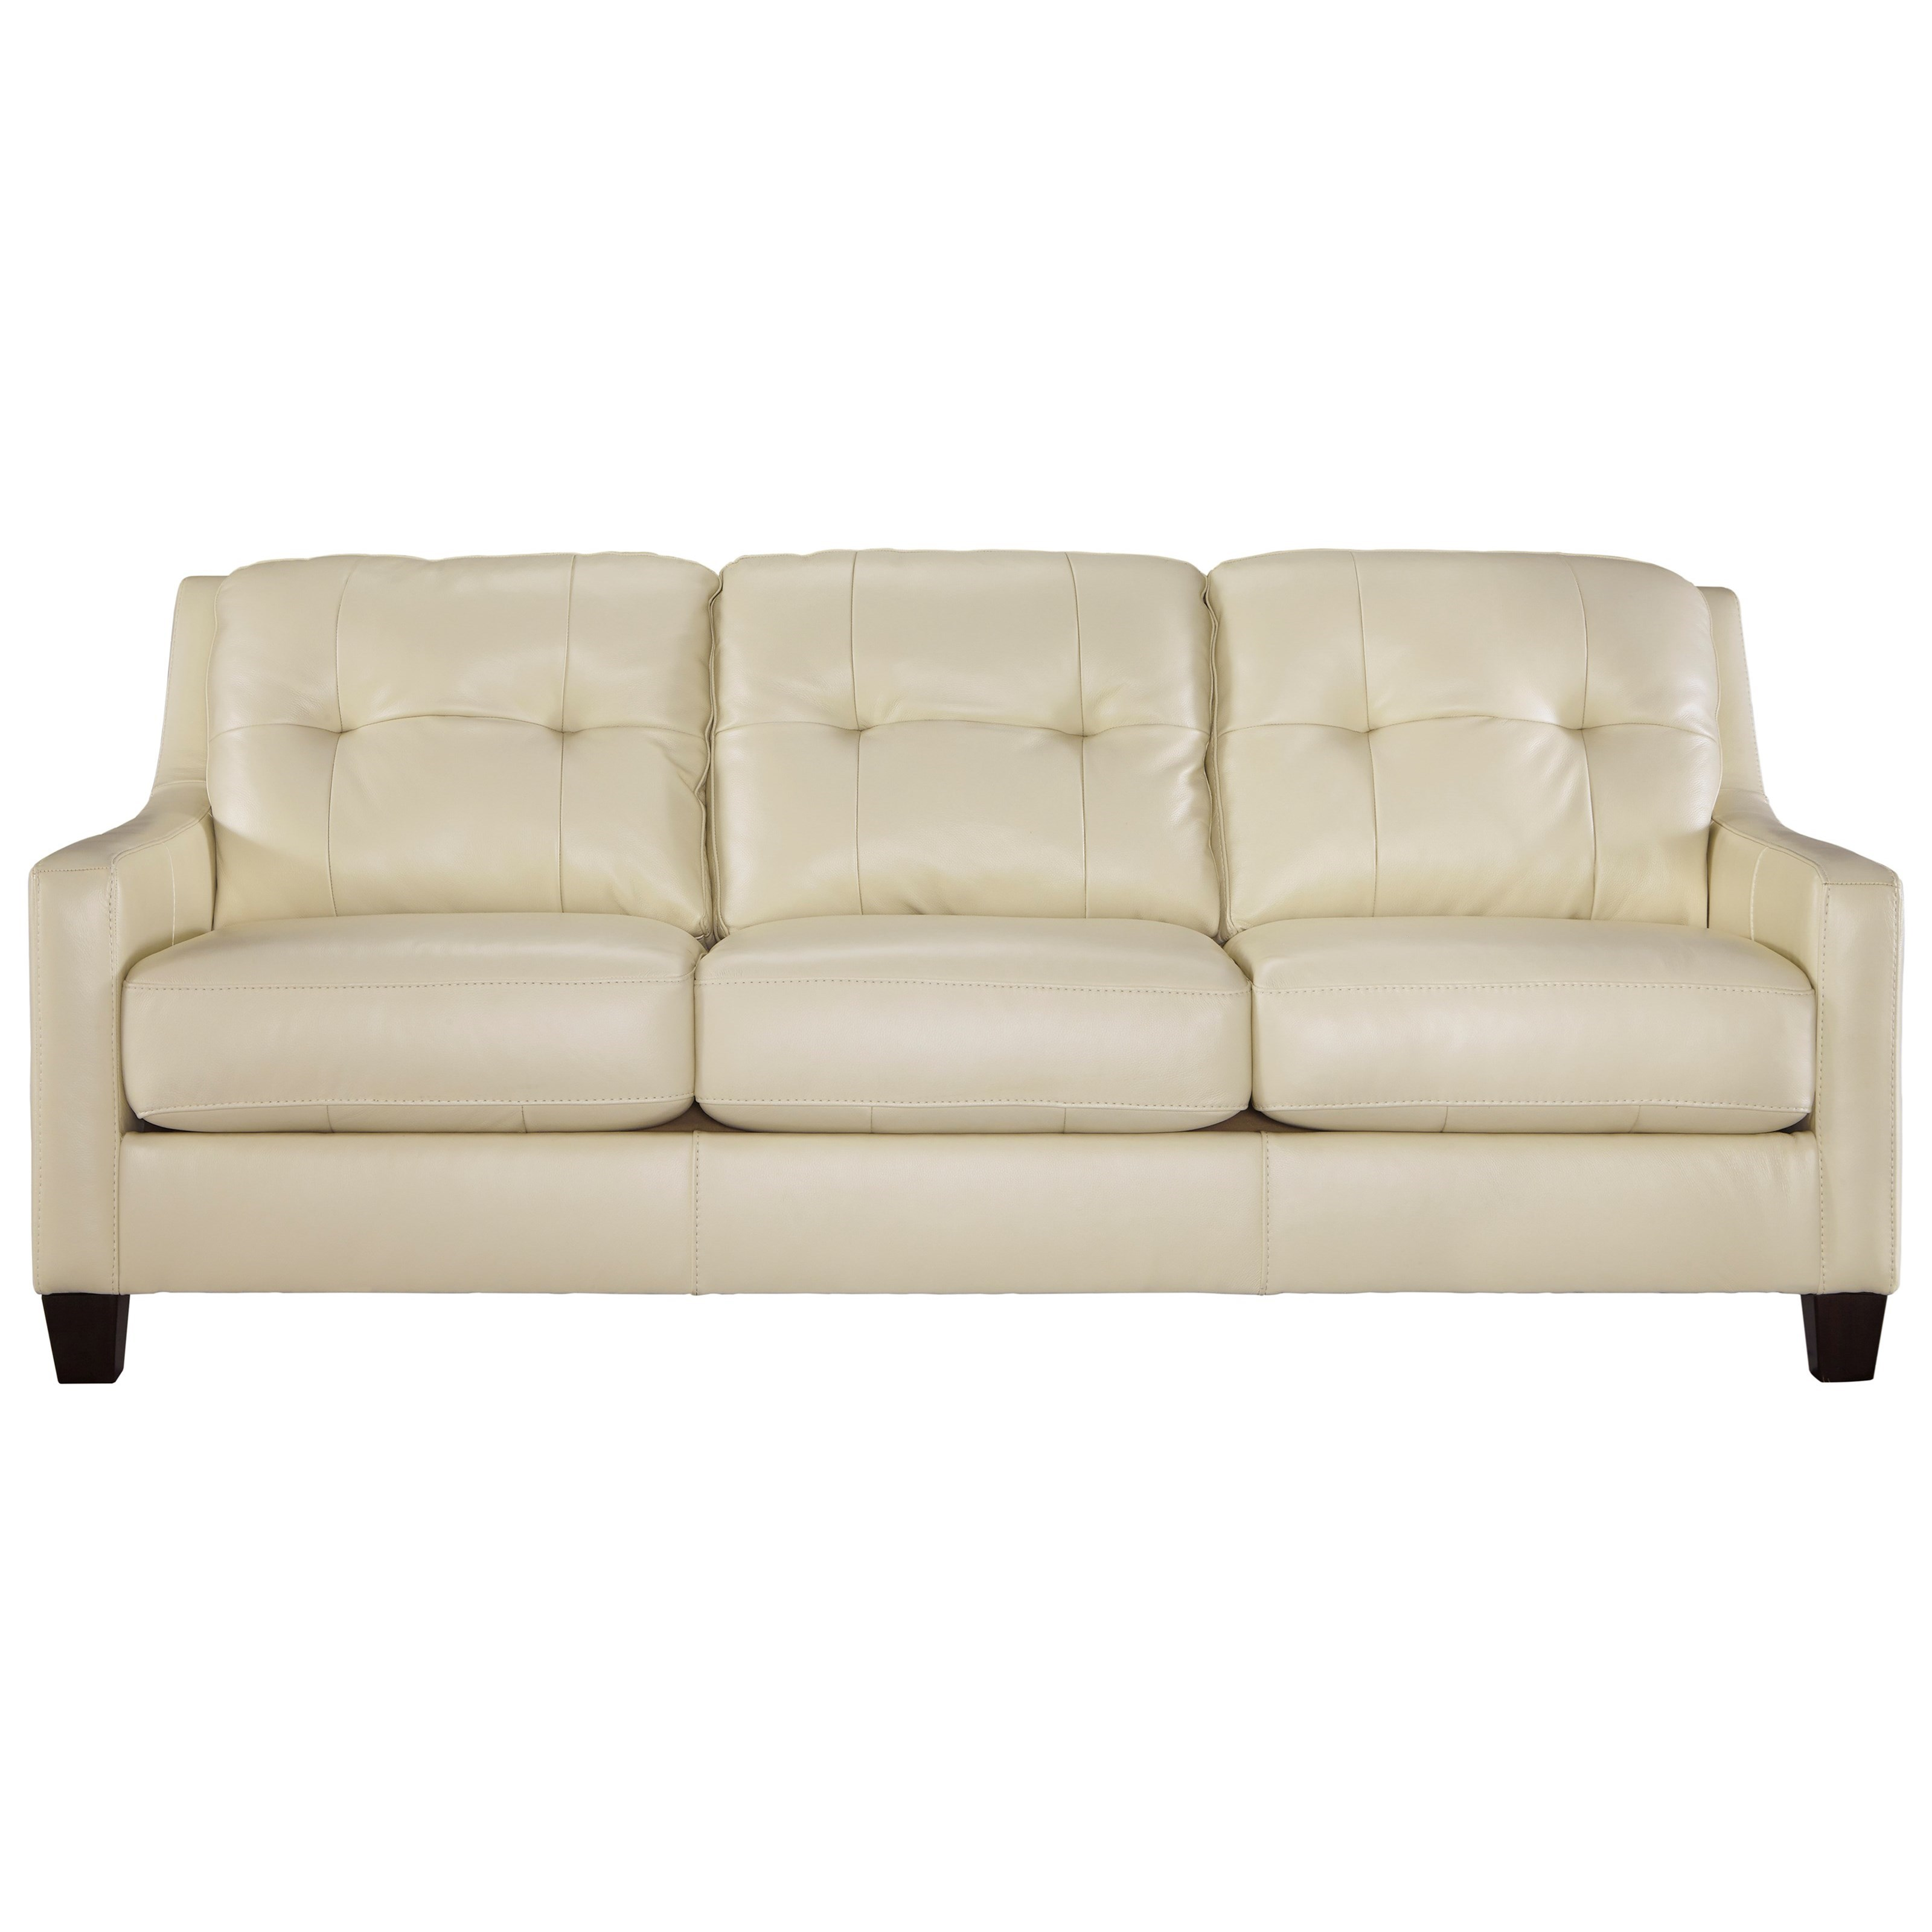 Signature Design by Ashley O'Kean Contemporary Leather Match Sofa ...